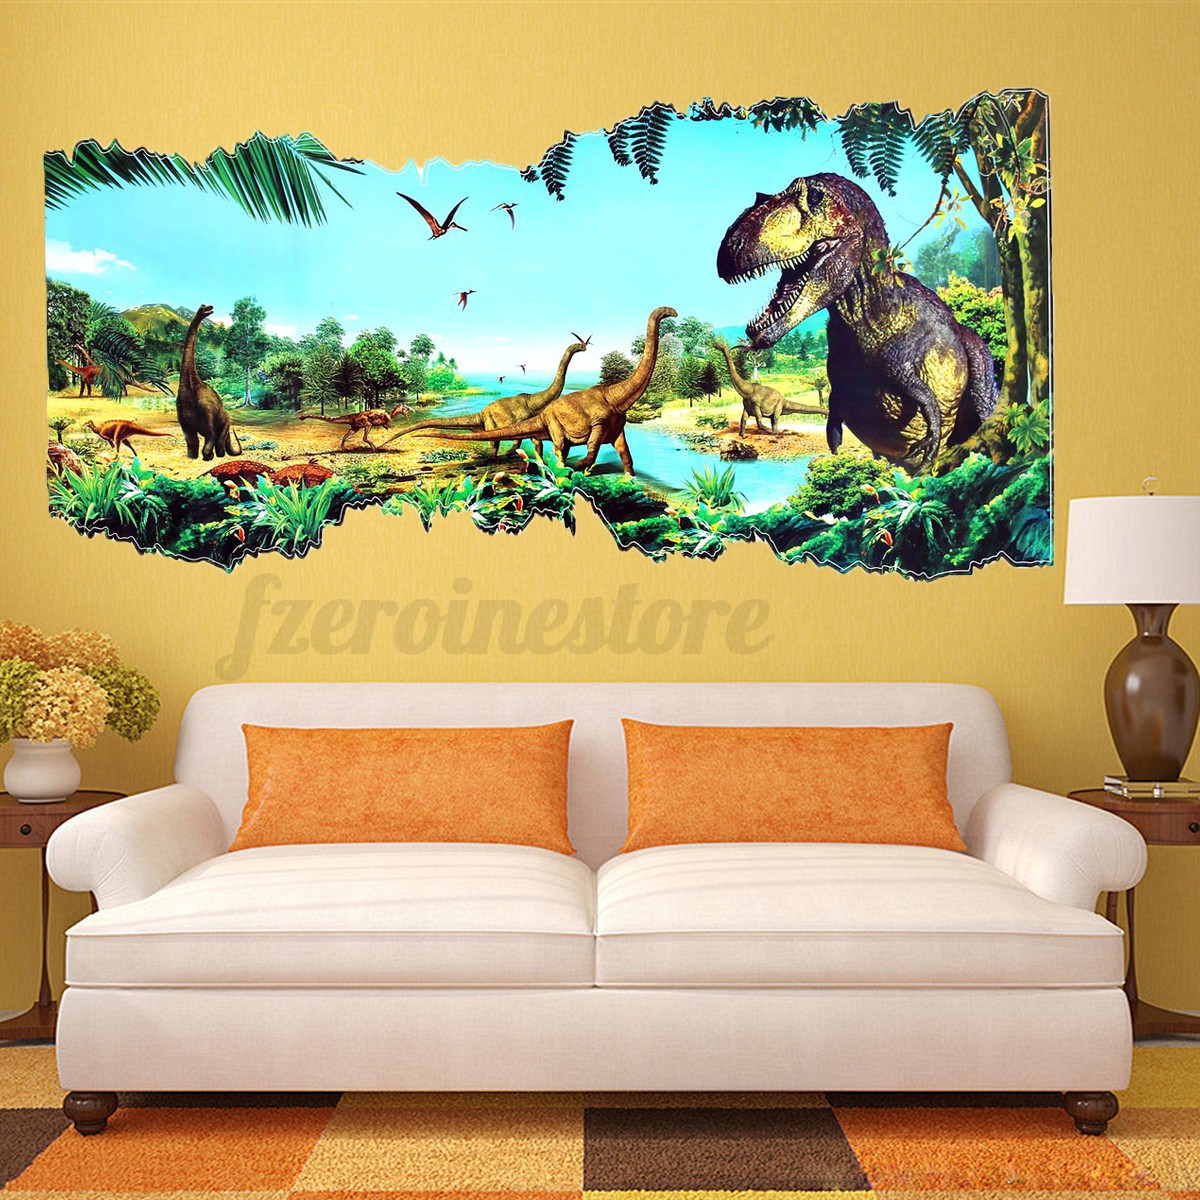 3d Home Decor 3d Jurassic World Park Dinosaur Wall Sticker Kids Room